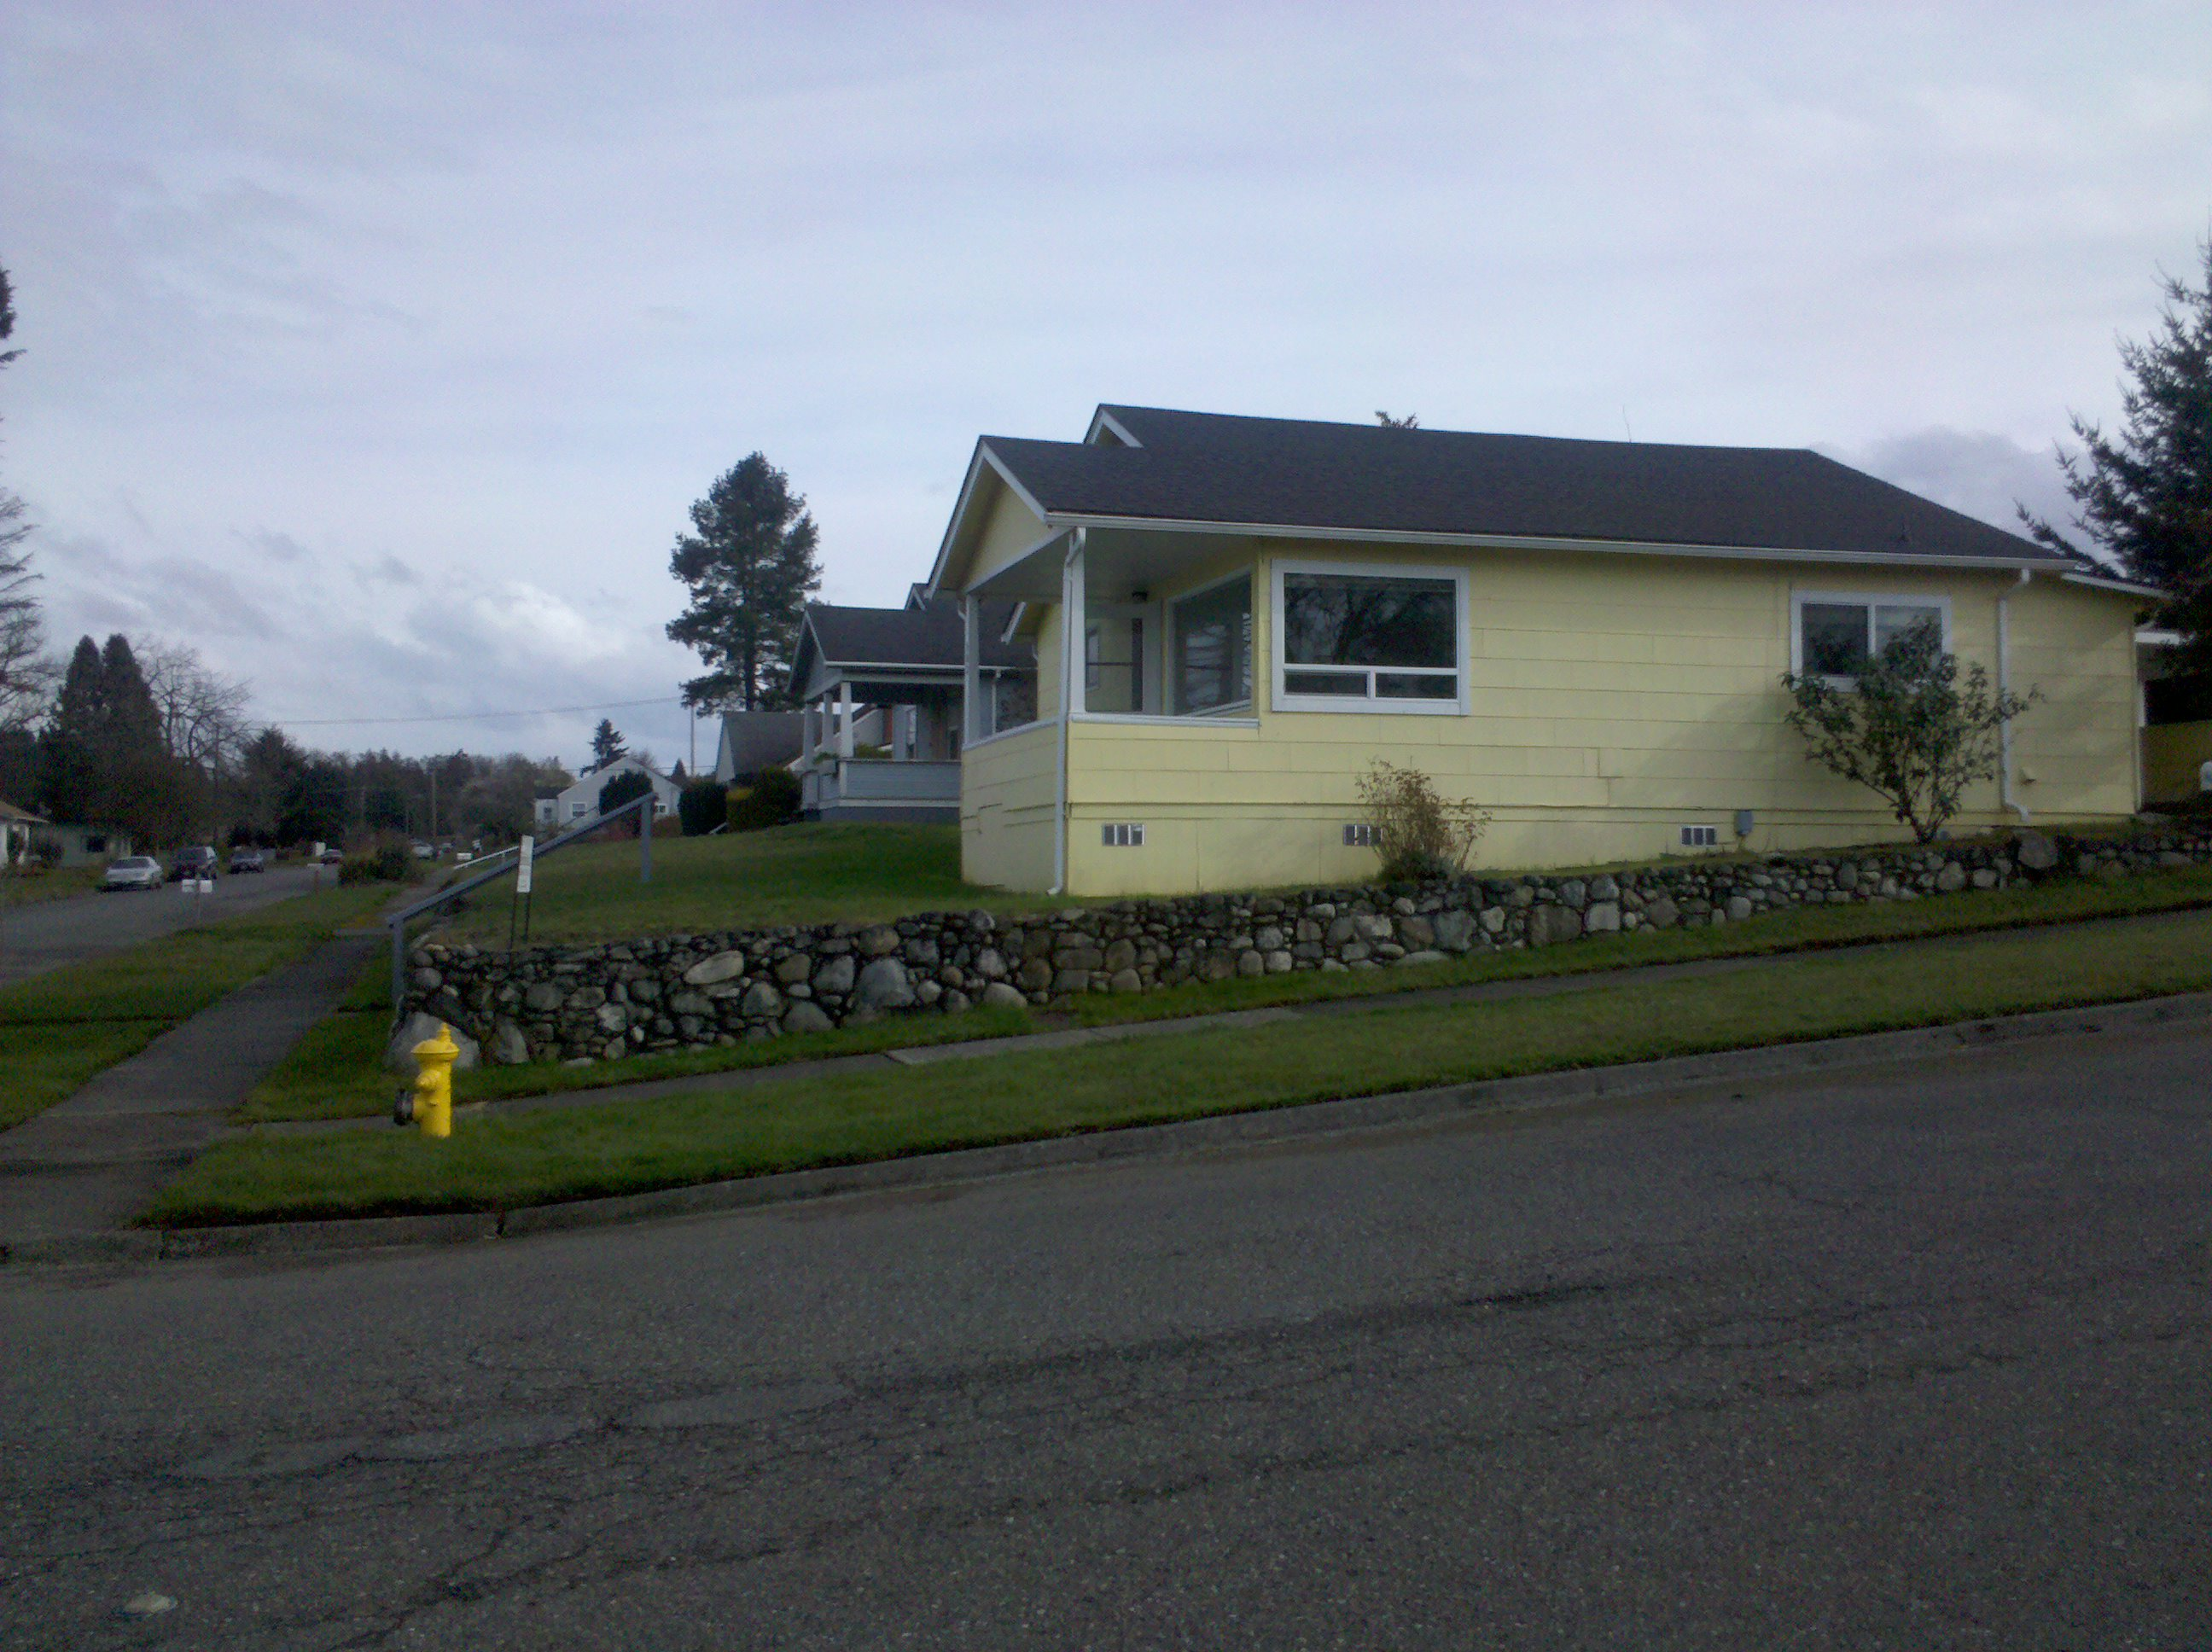 502 E 10th, Port Angeles WA 98362